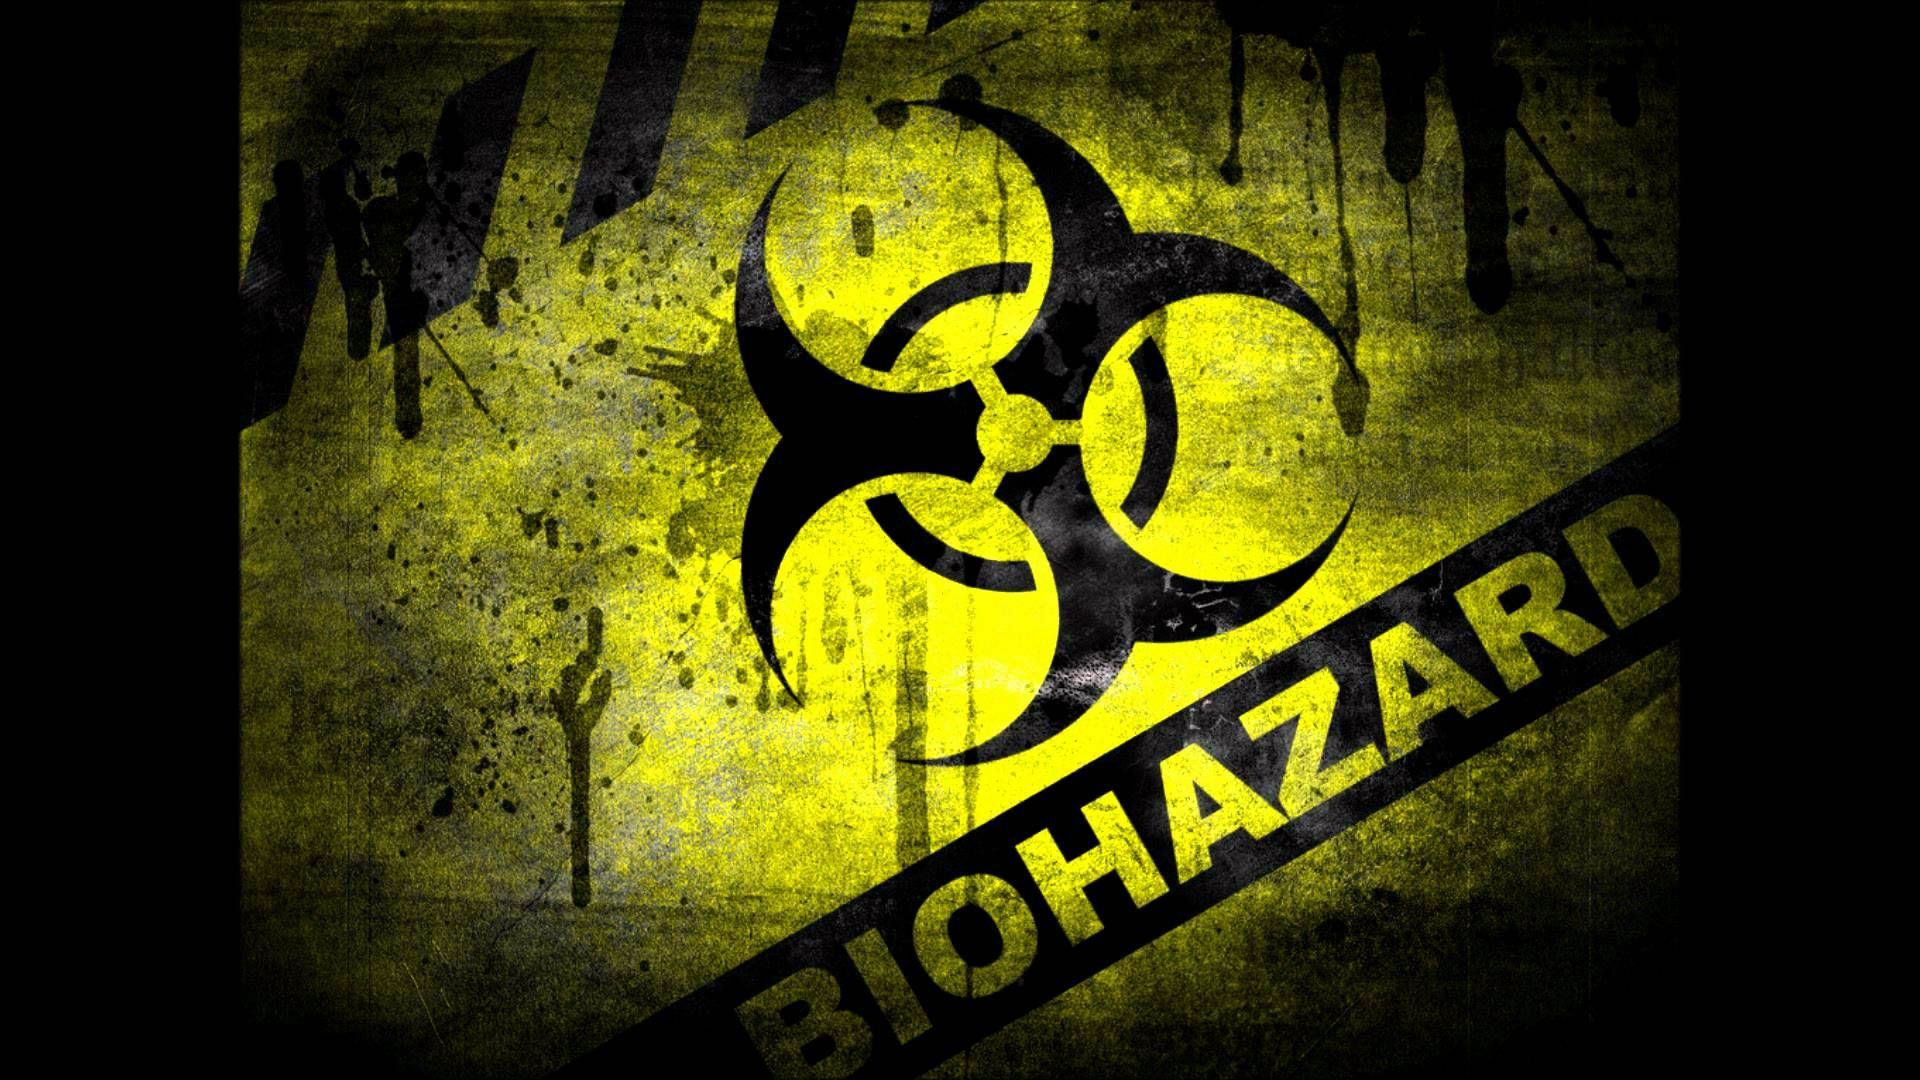 Biohazard symbol google search projects to try pinterest biohazard symbol google search buycottarizona